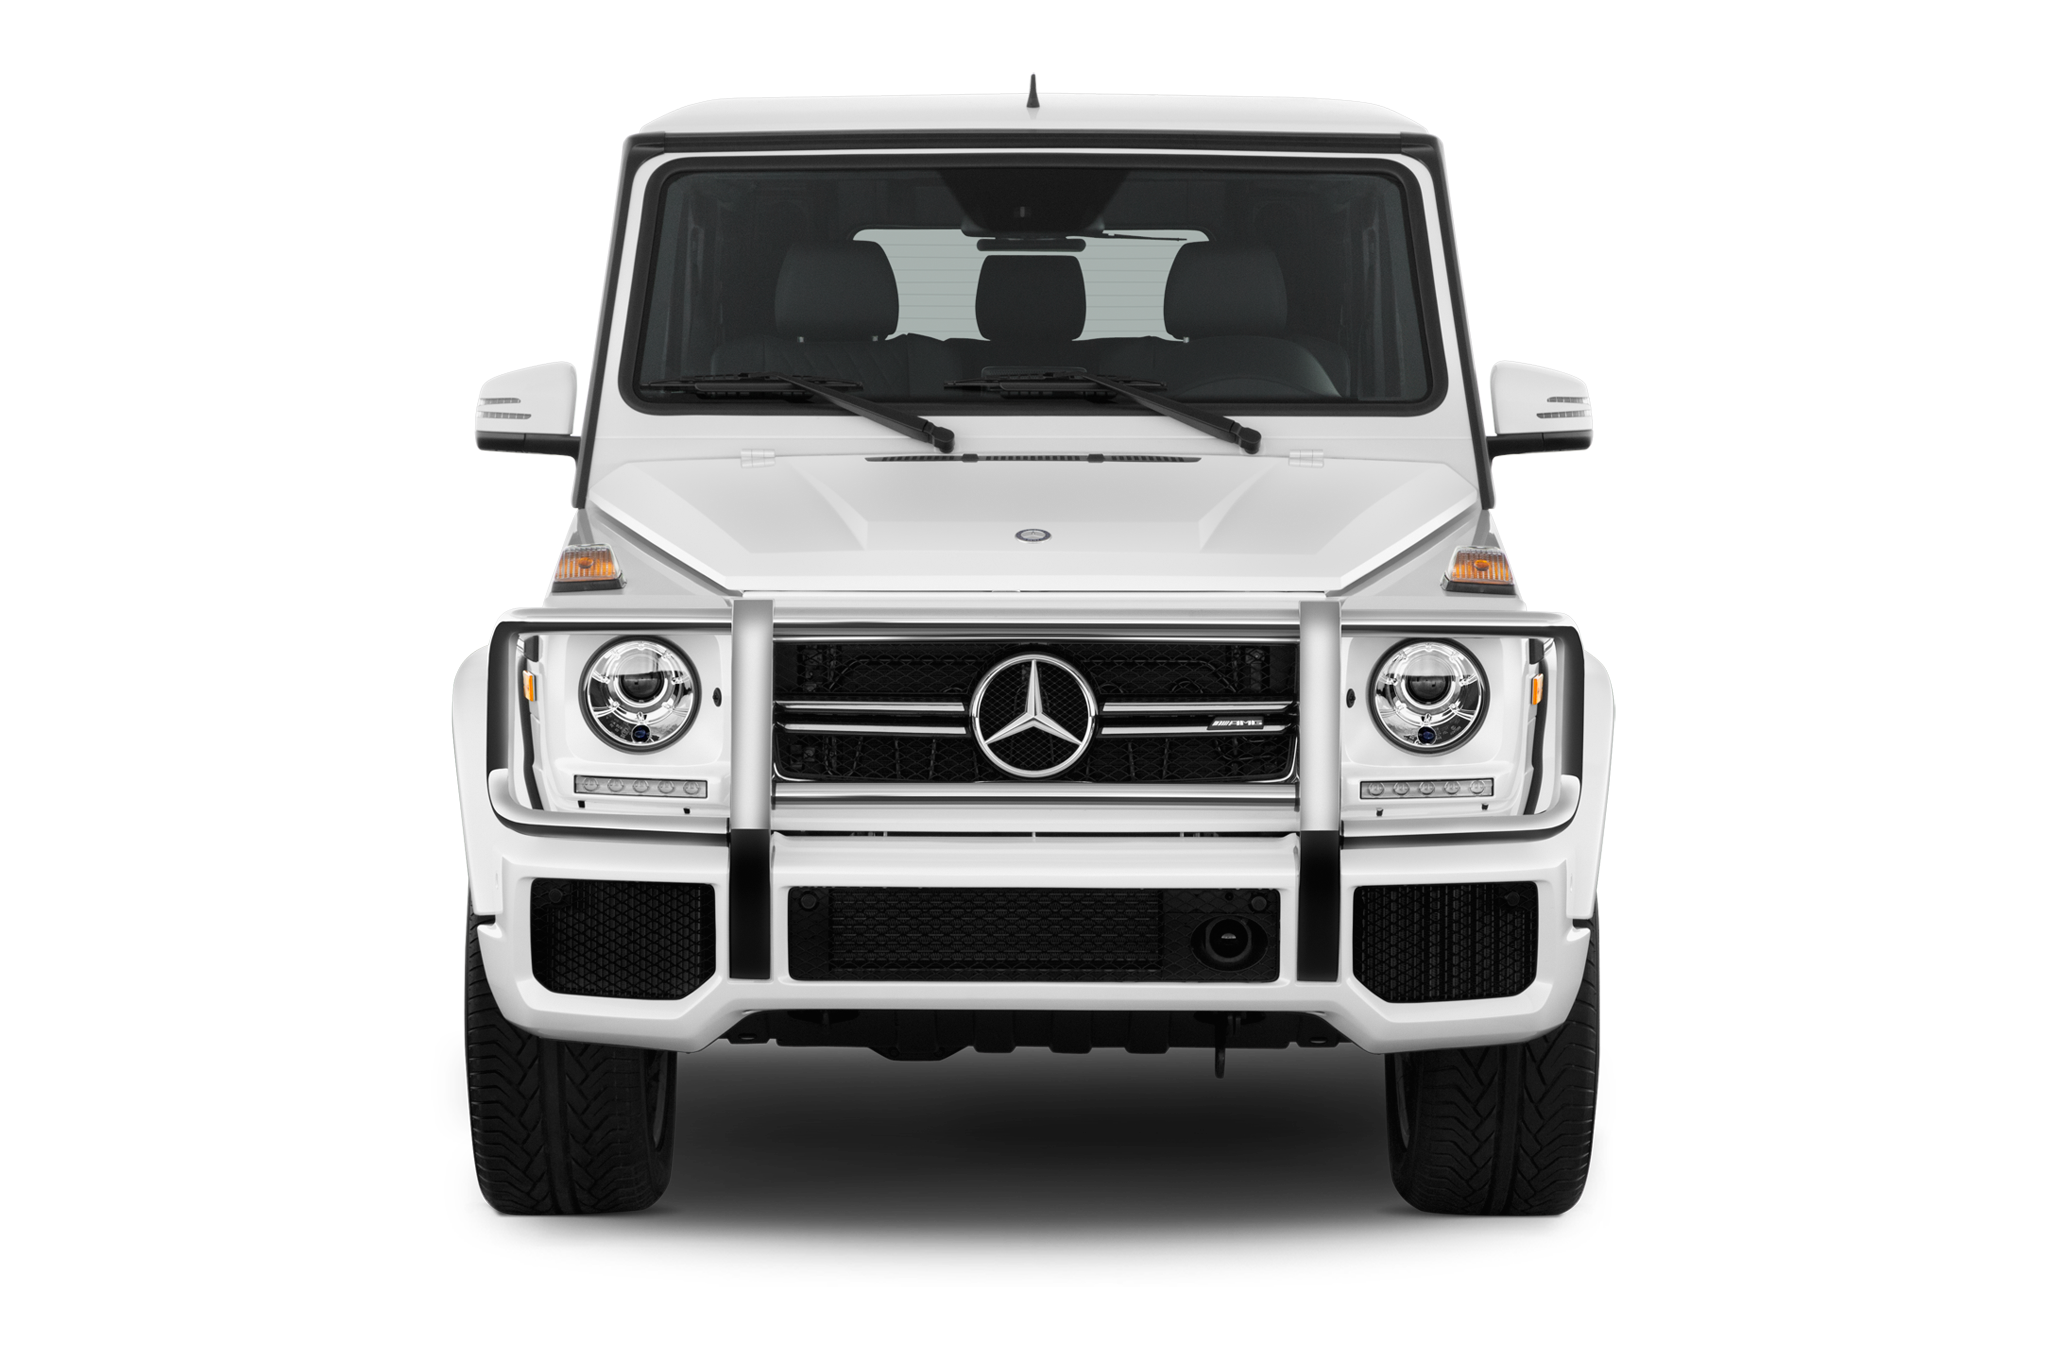 Mercedes benz g63 amg suv price galleria di automobili for Mercedes benz g class suv price